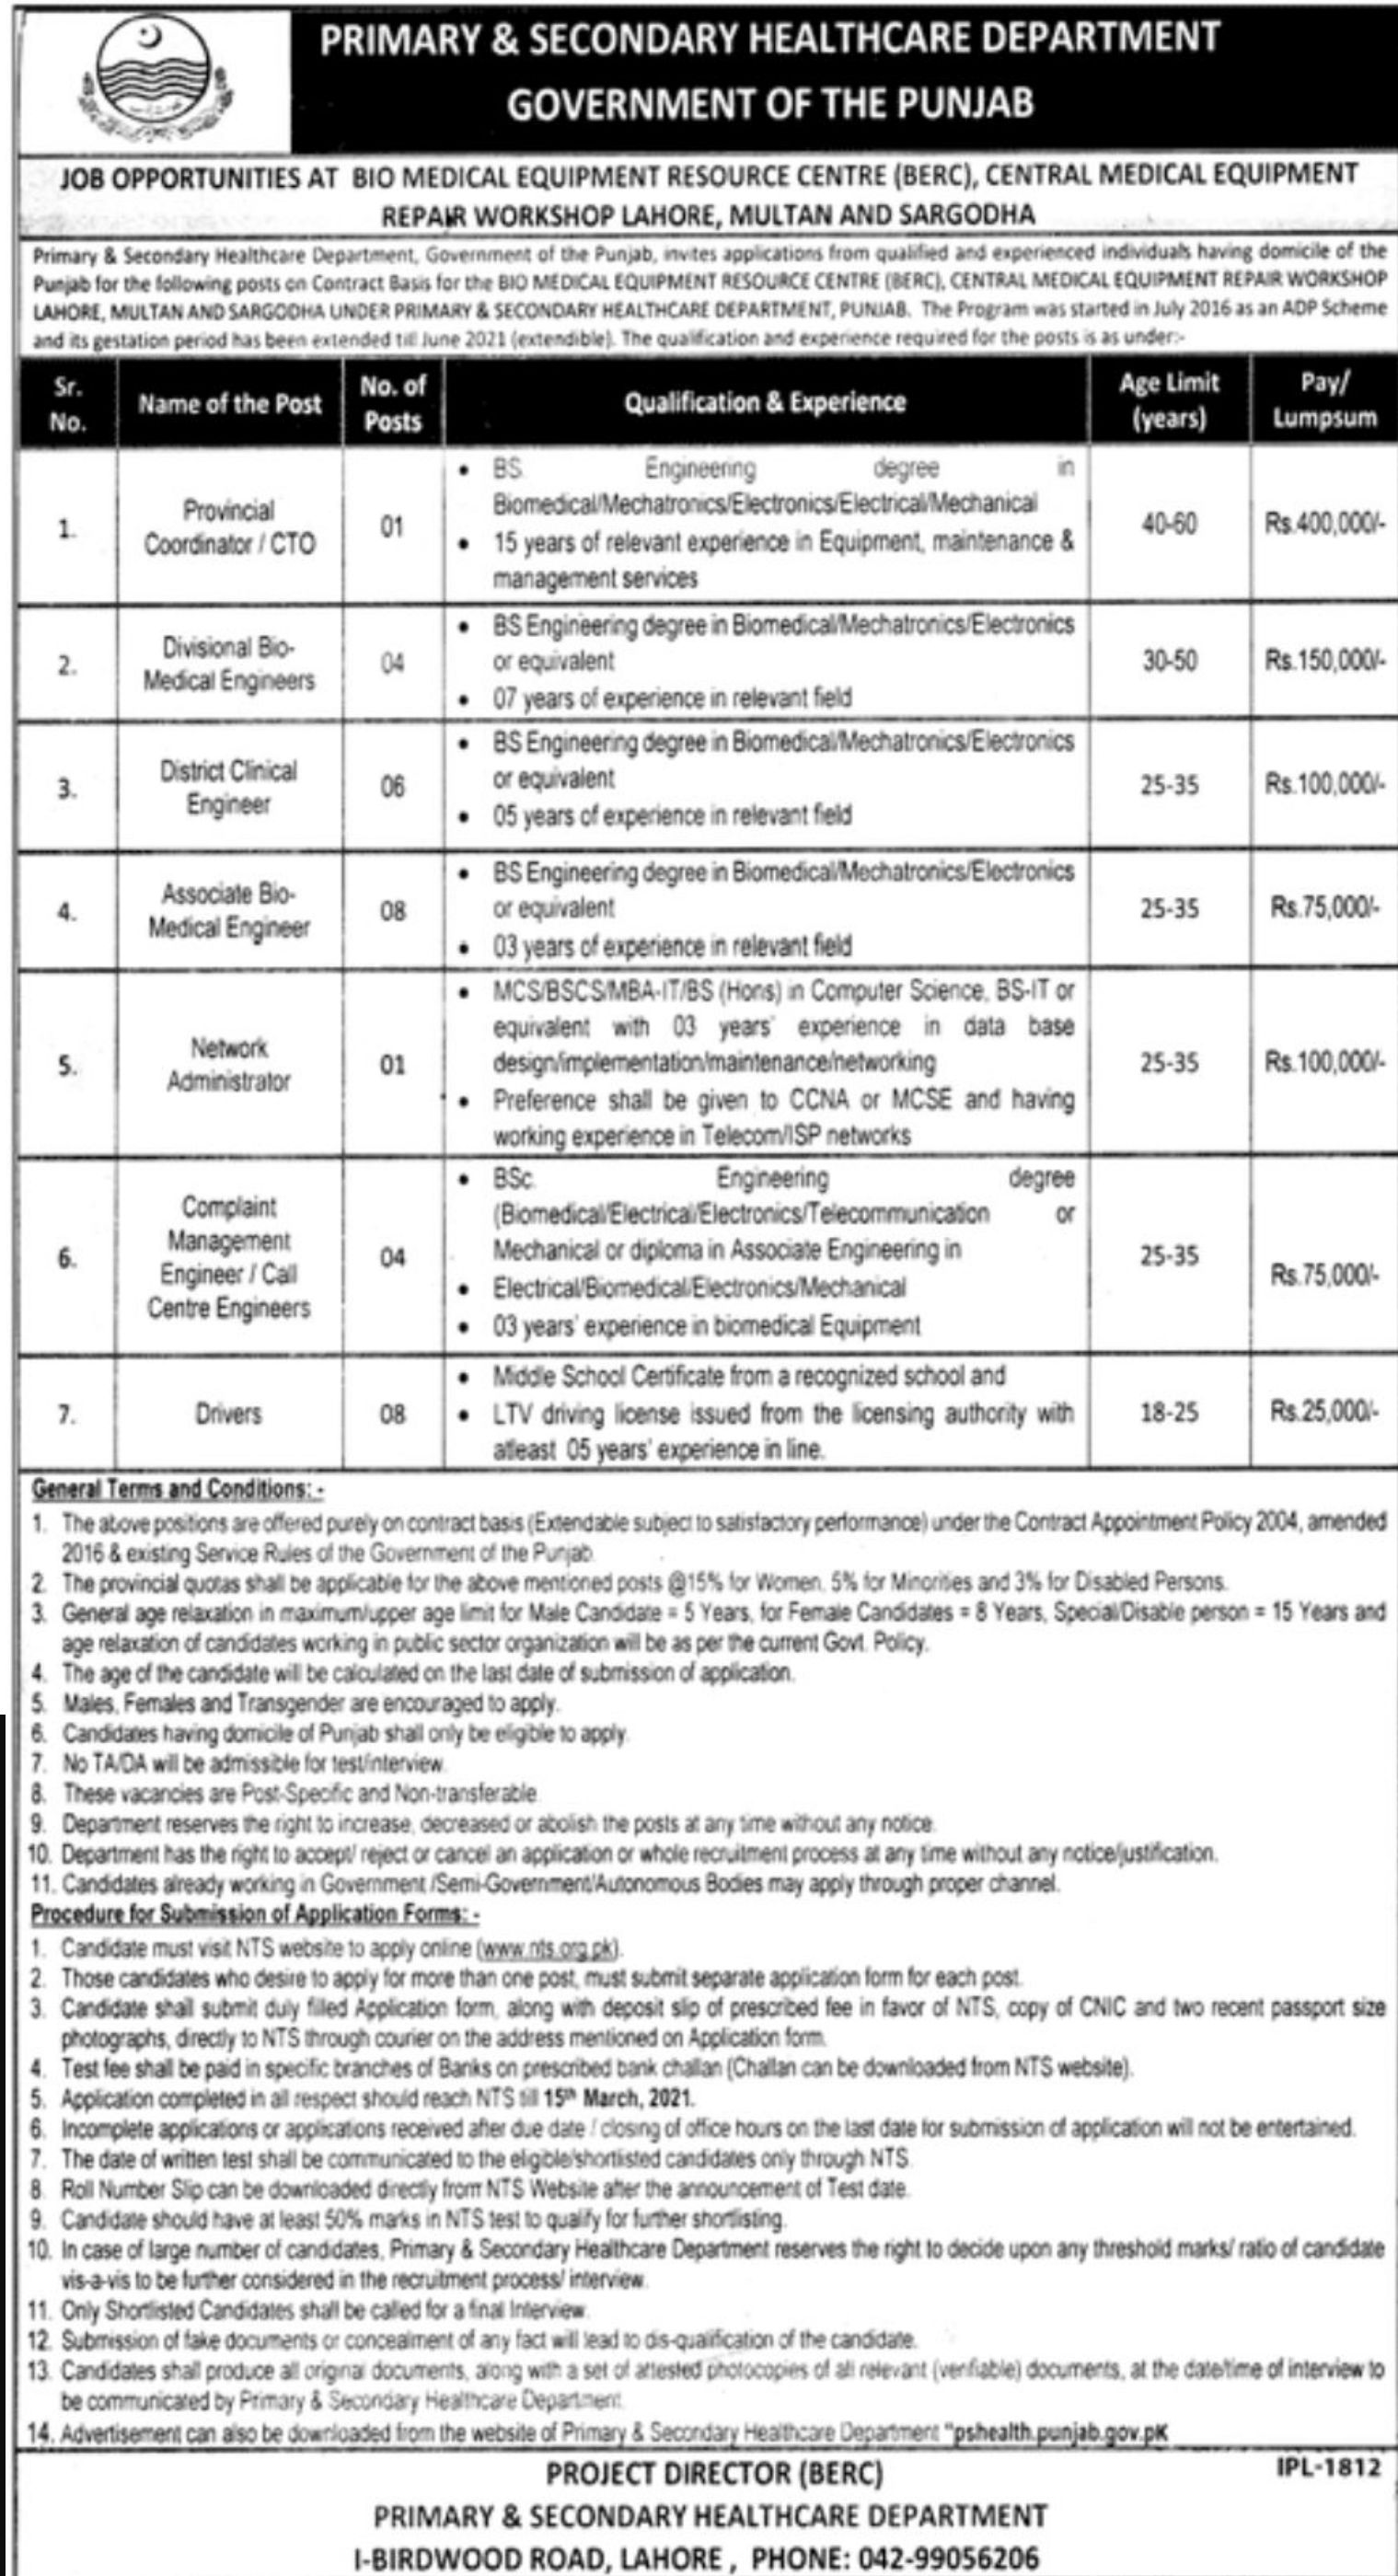 Government of the Punjab Primary & Secondary Healthcare Department Jobs 2021